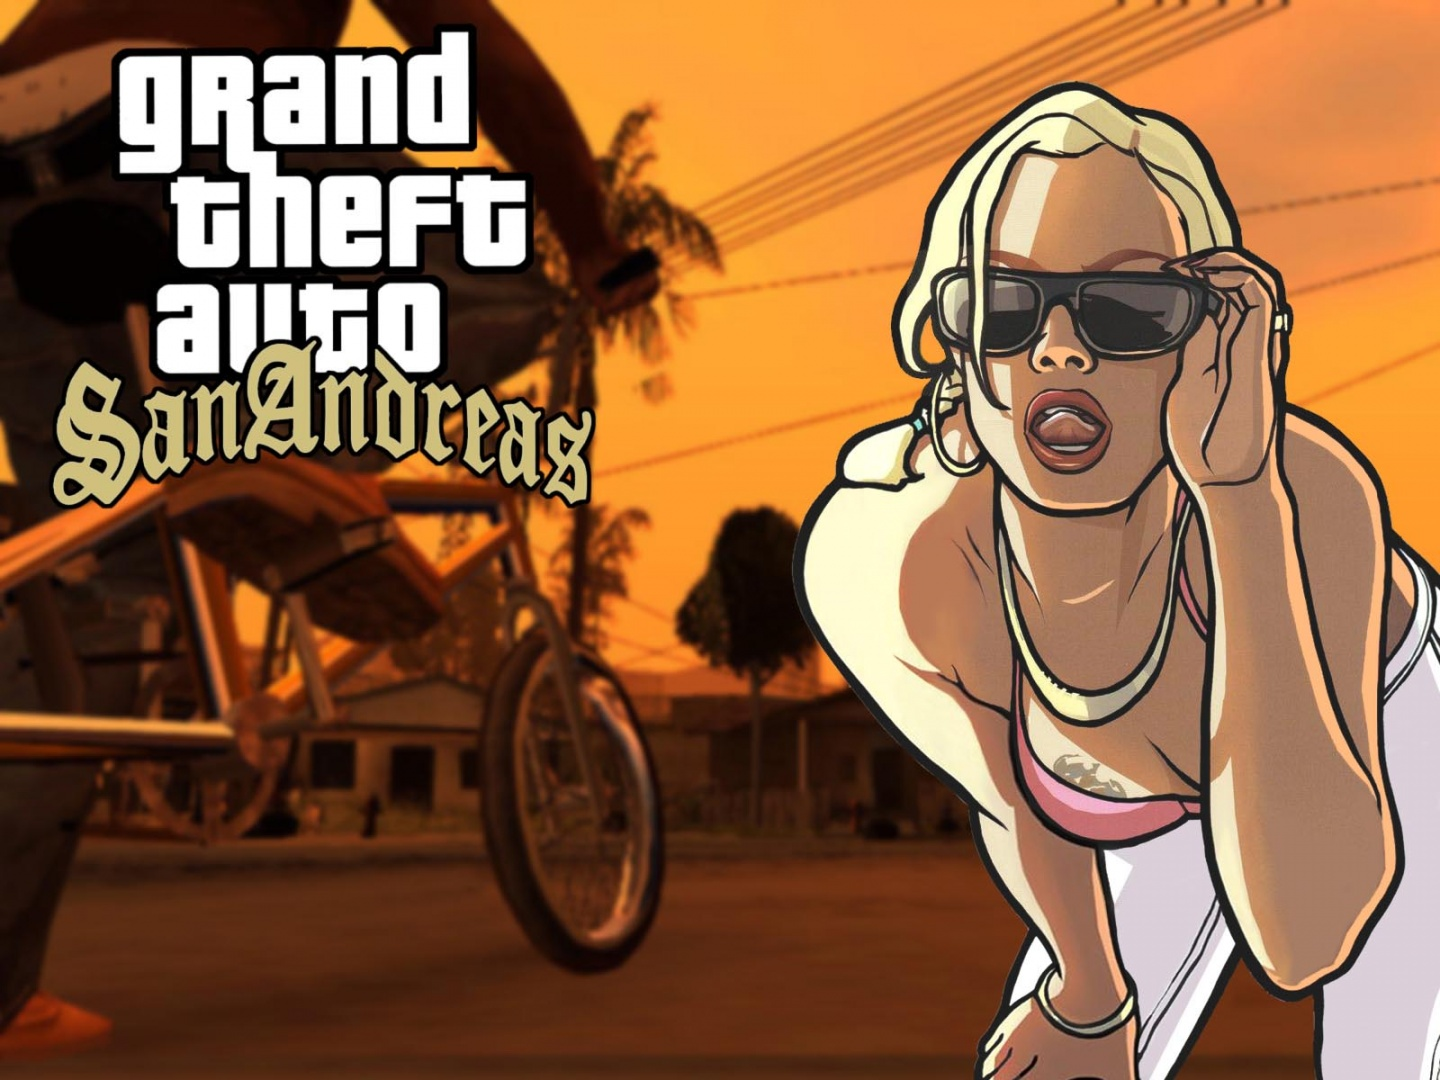 Grand Theft Auto San Andreas Wallpapers 1440x1080 373391